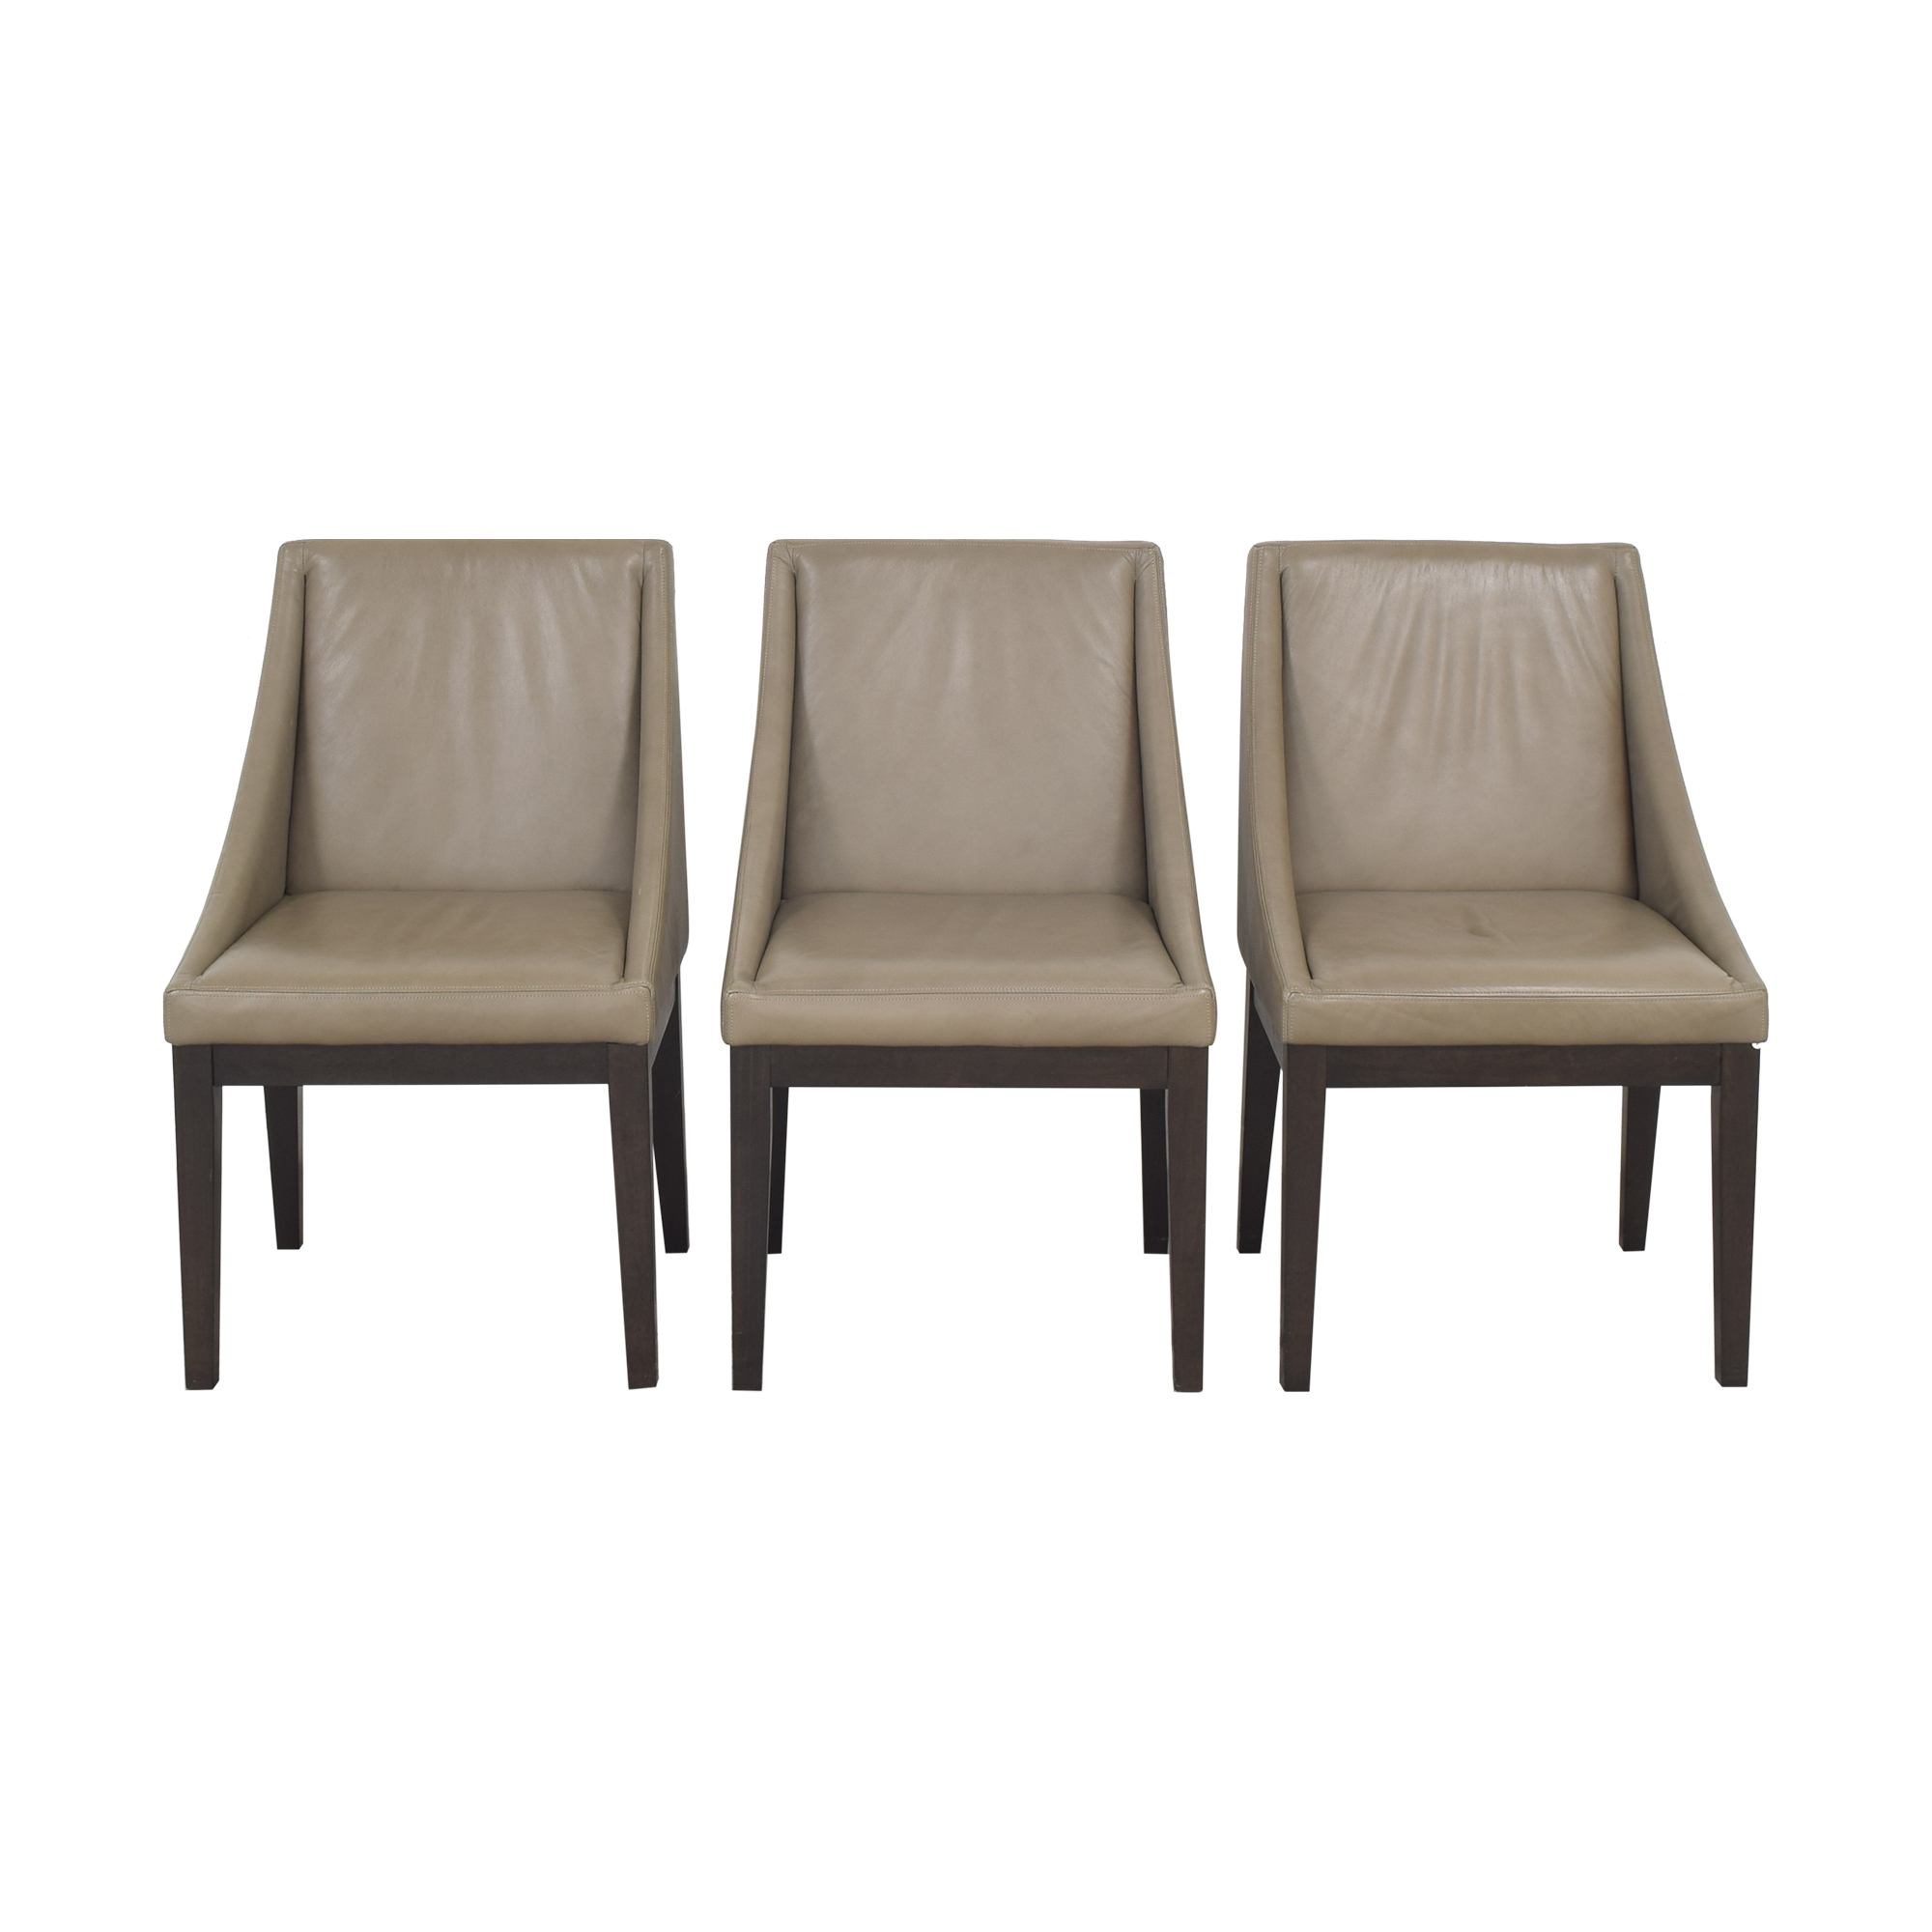 West Elm West Elm Curved Dining Chairs Chairs